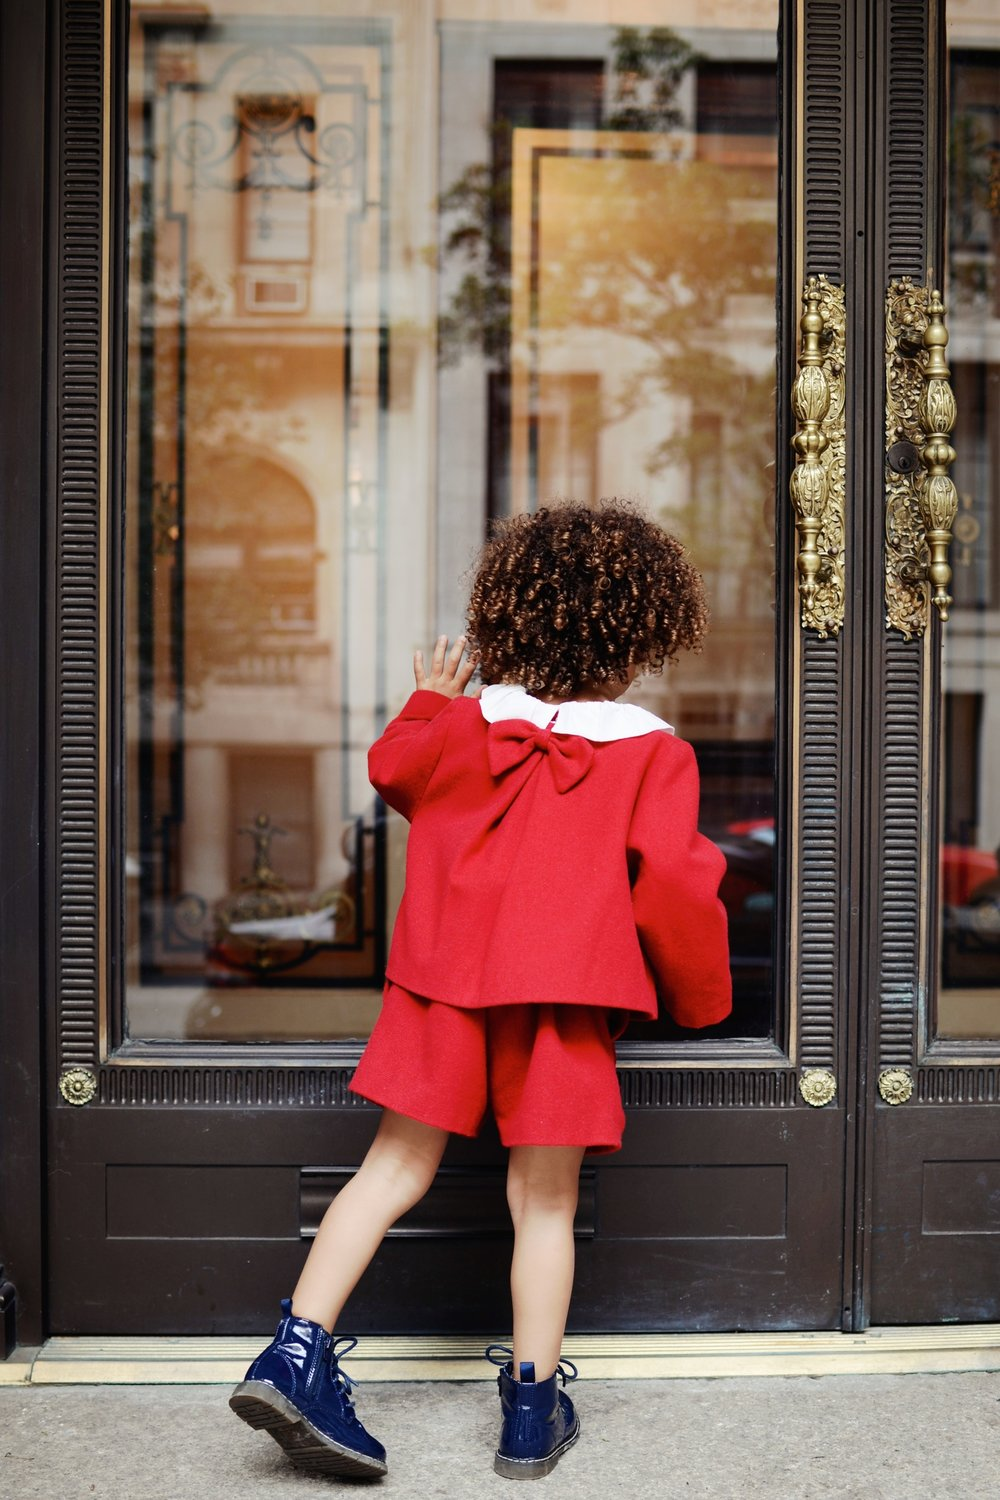 Enfant+Street+Style+by+Gina+Kim+Photography-50.jpeg